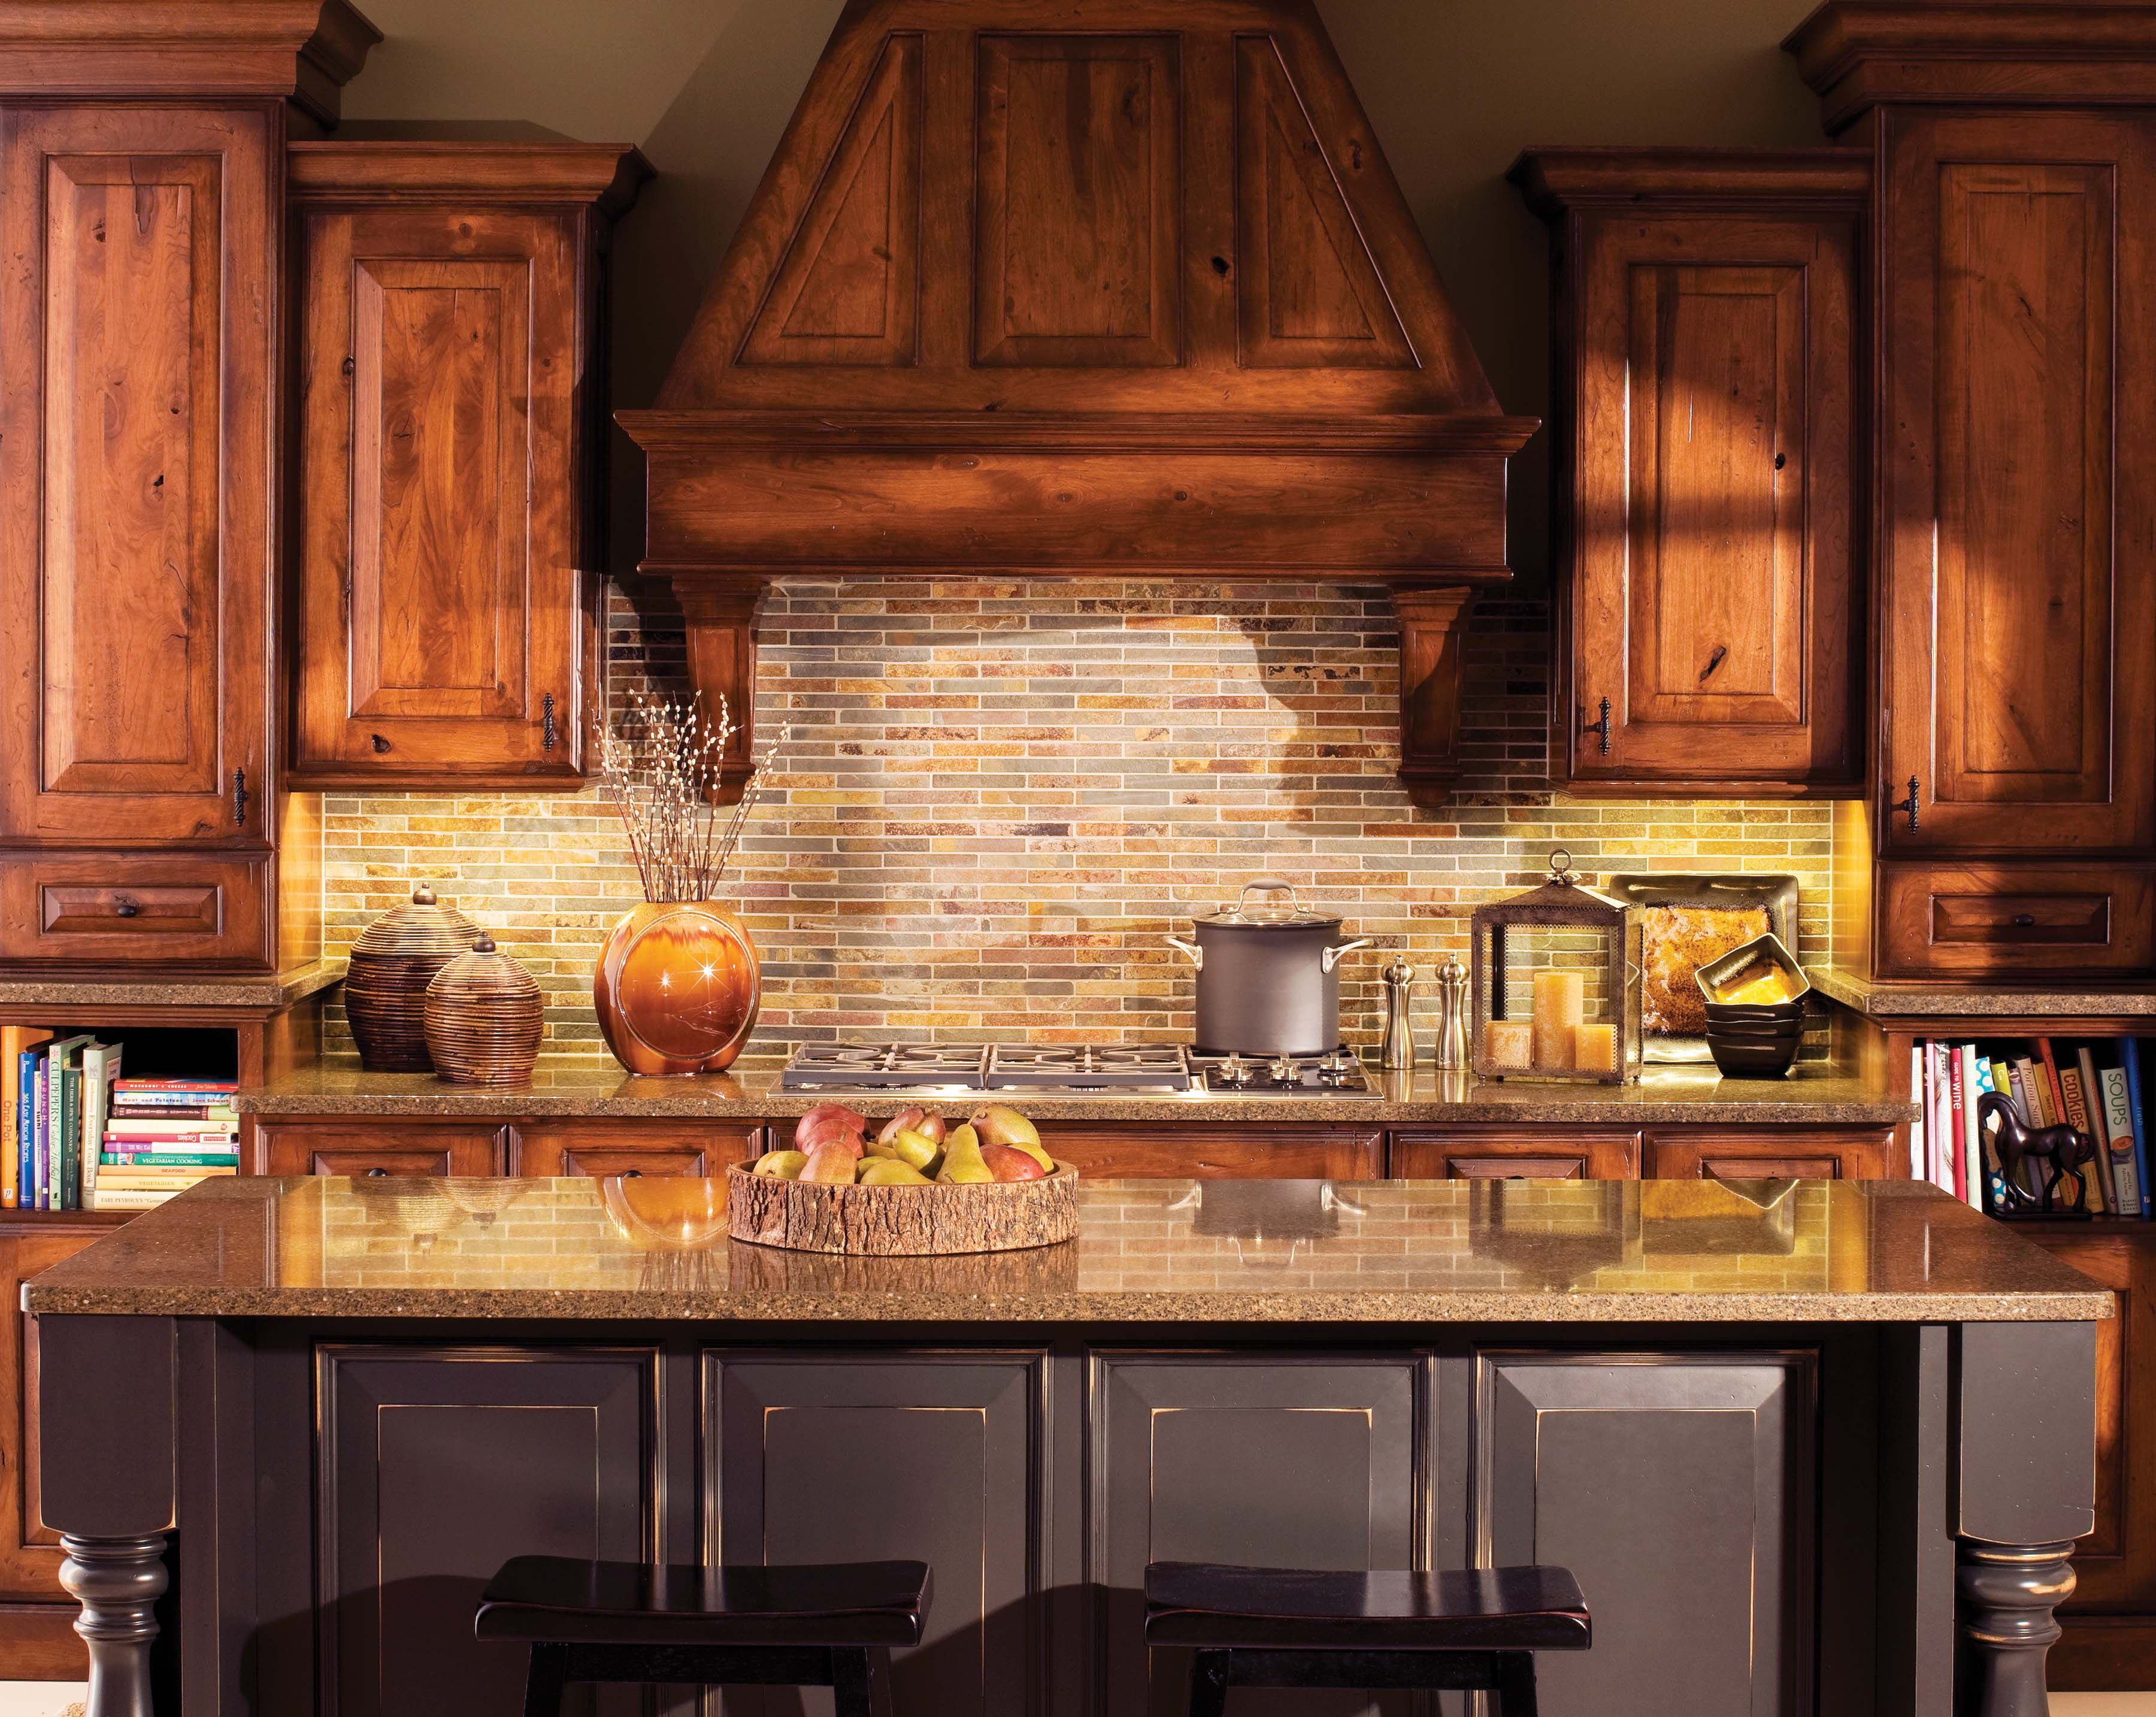 The brick work looks great with the cabinets Cabinets